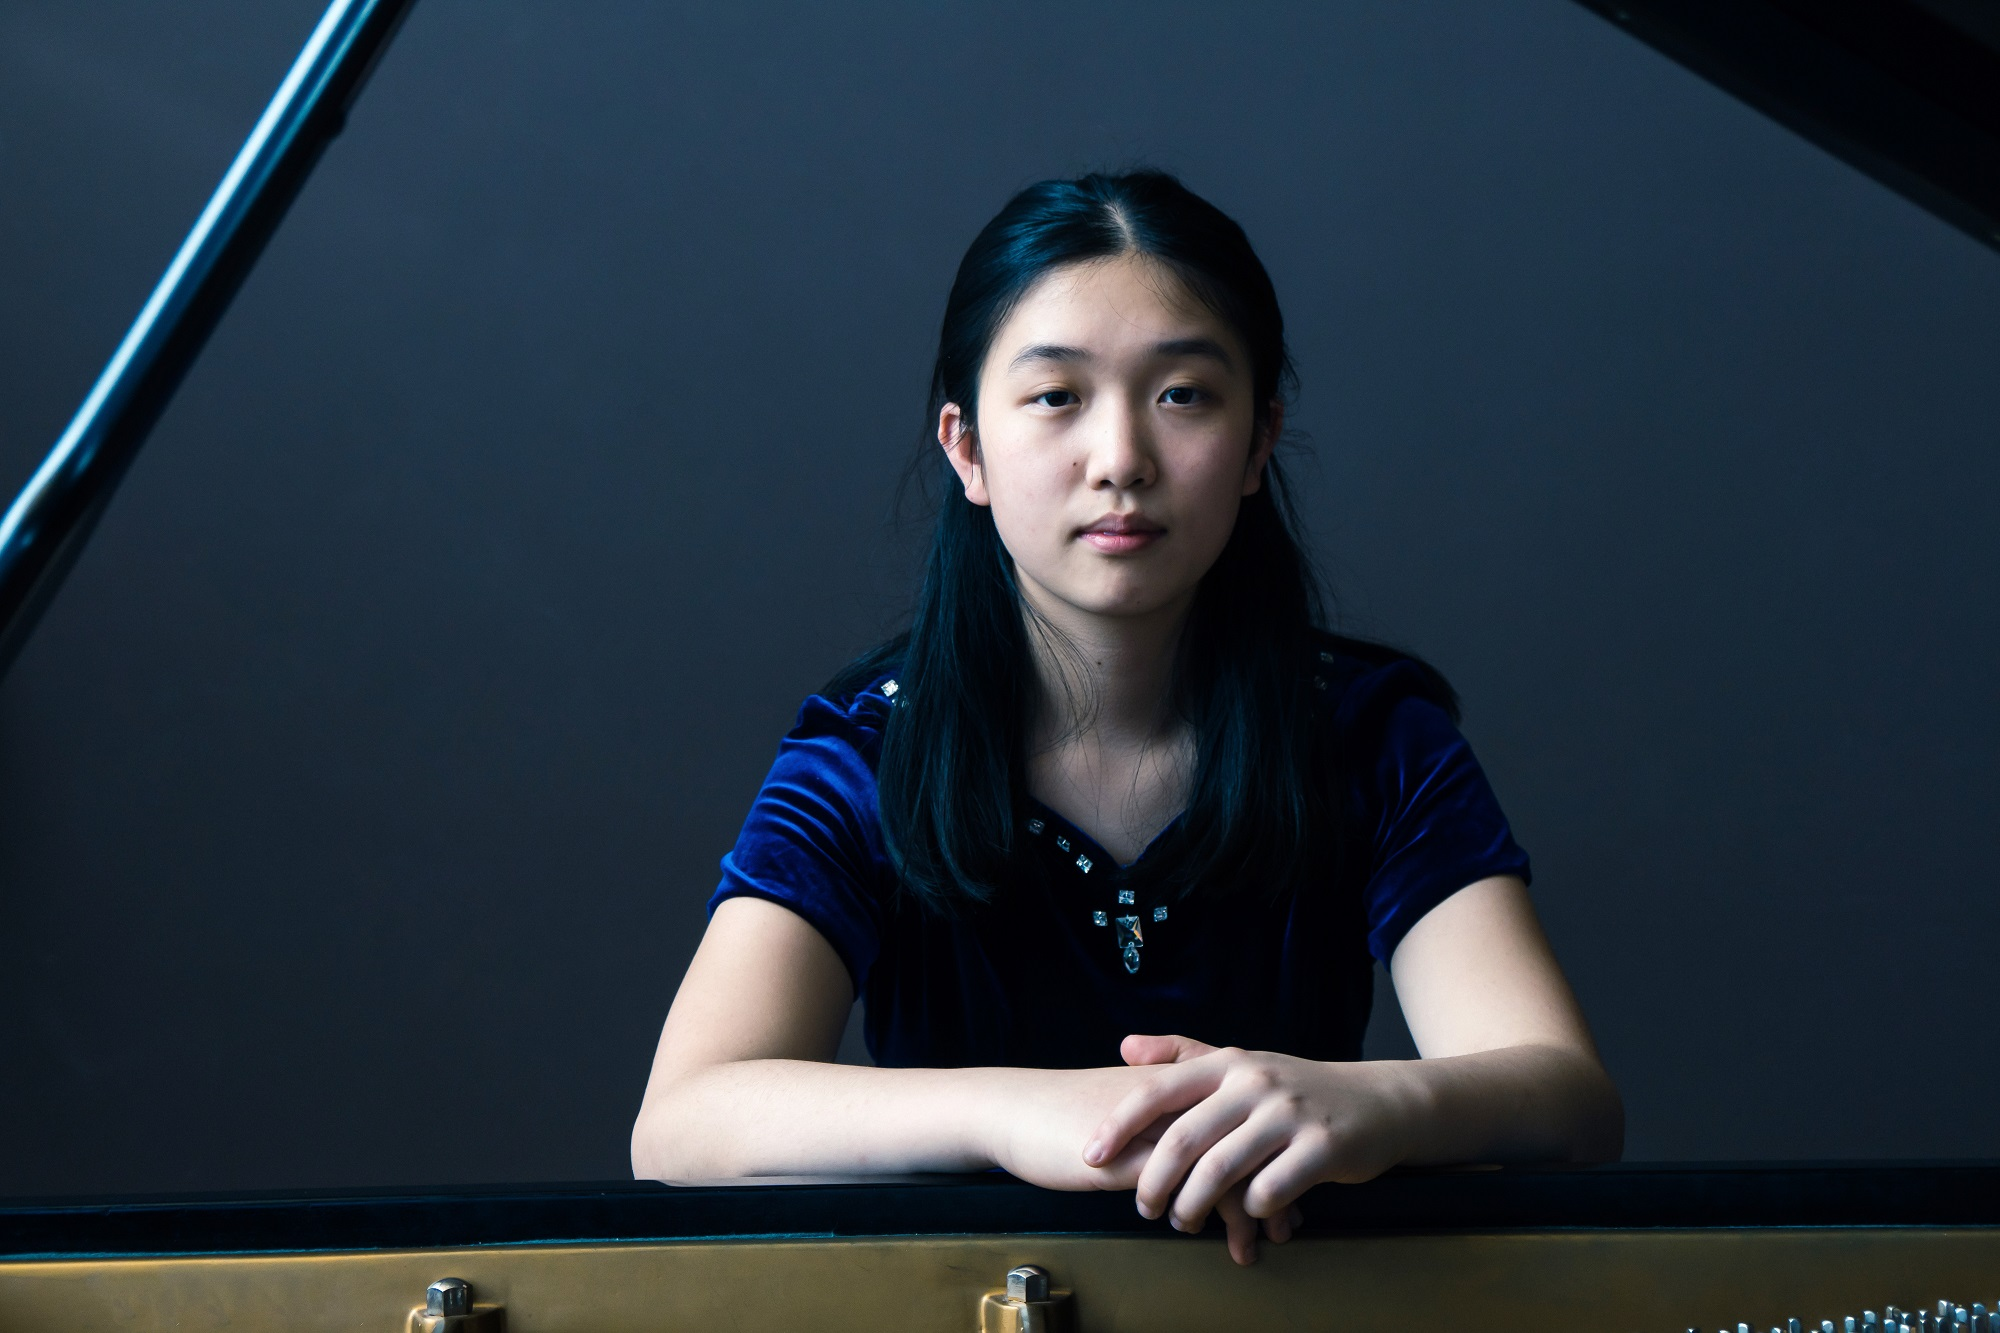 Rising piano star Laura inspires new generation of talent